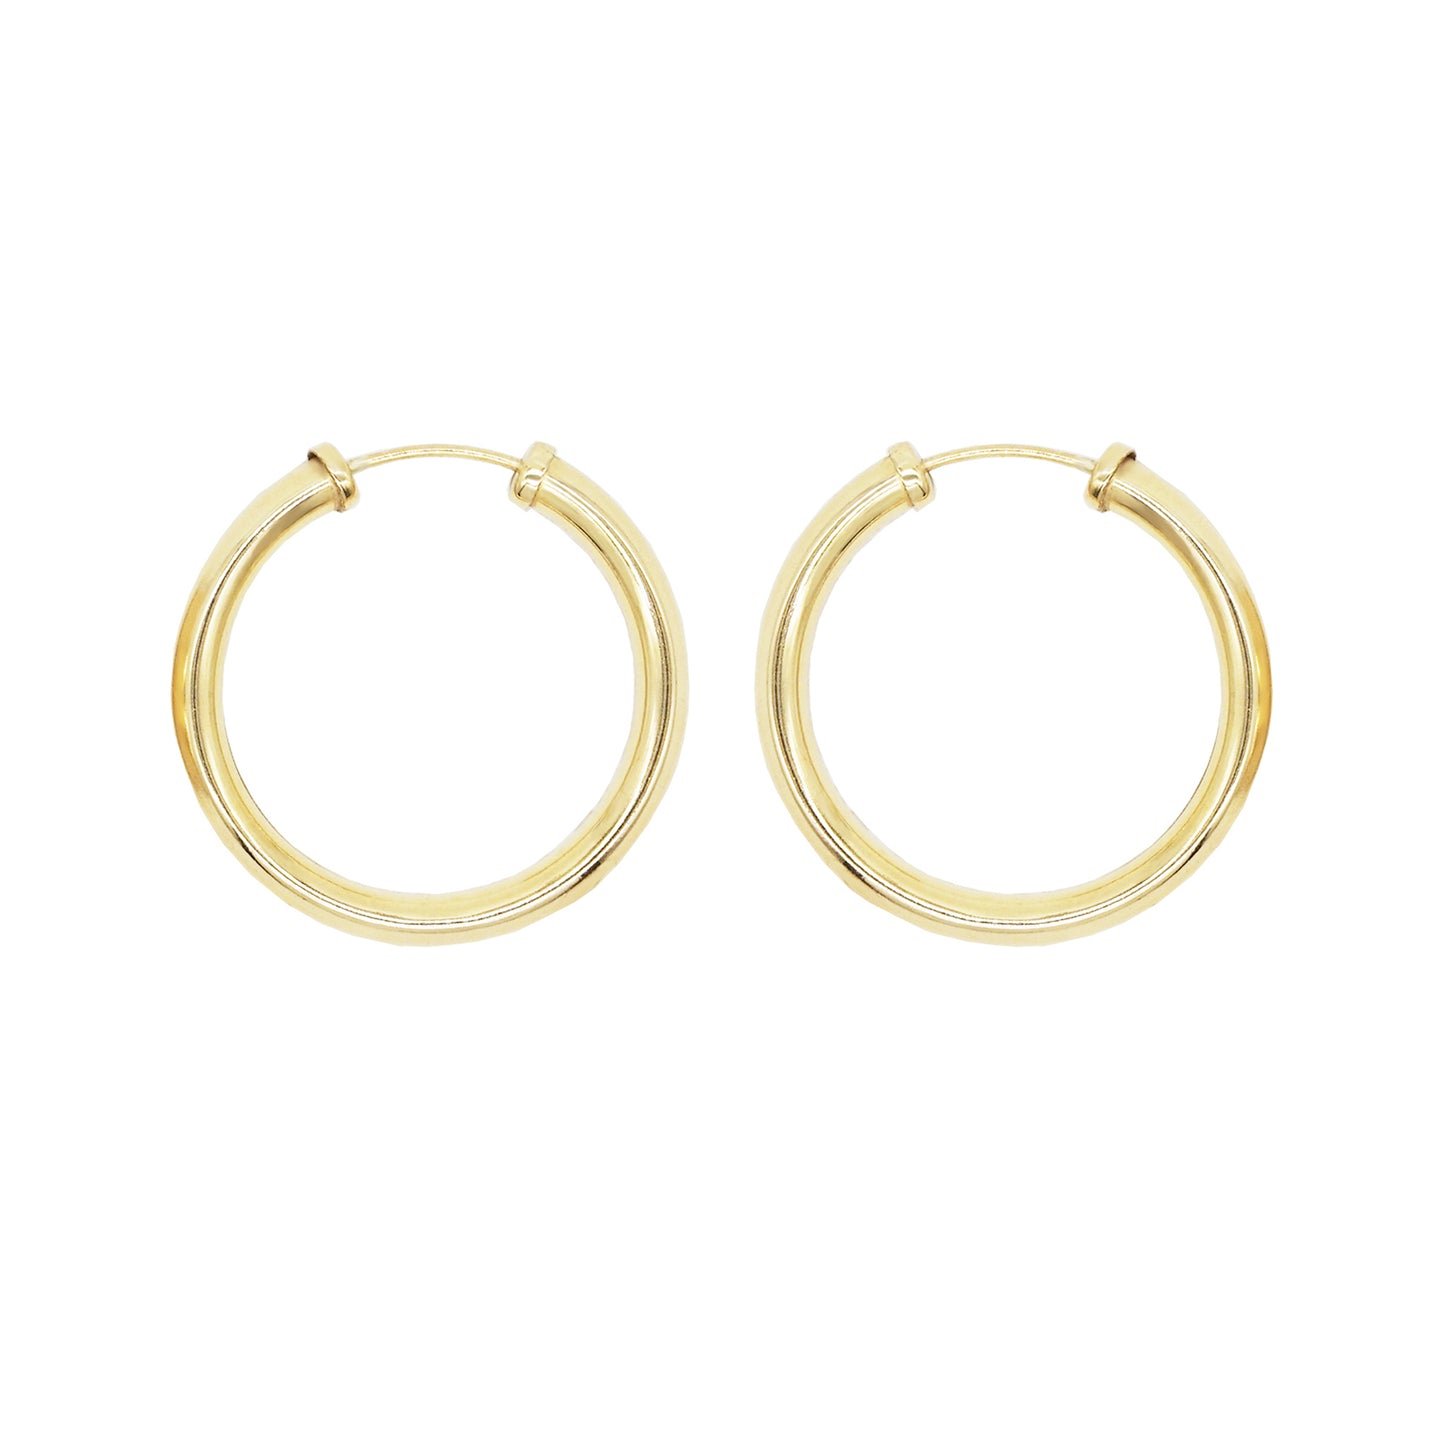 Close up product shot of 9K gold tube hoop earrings on a white background